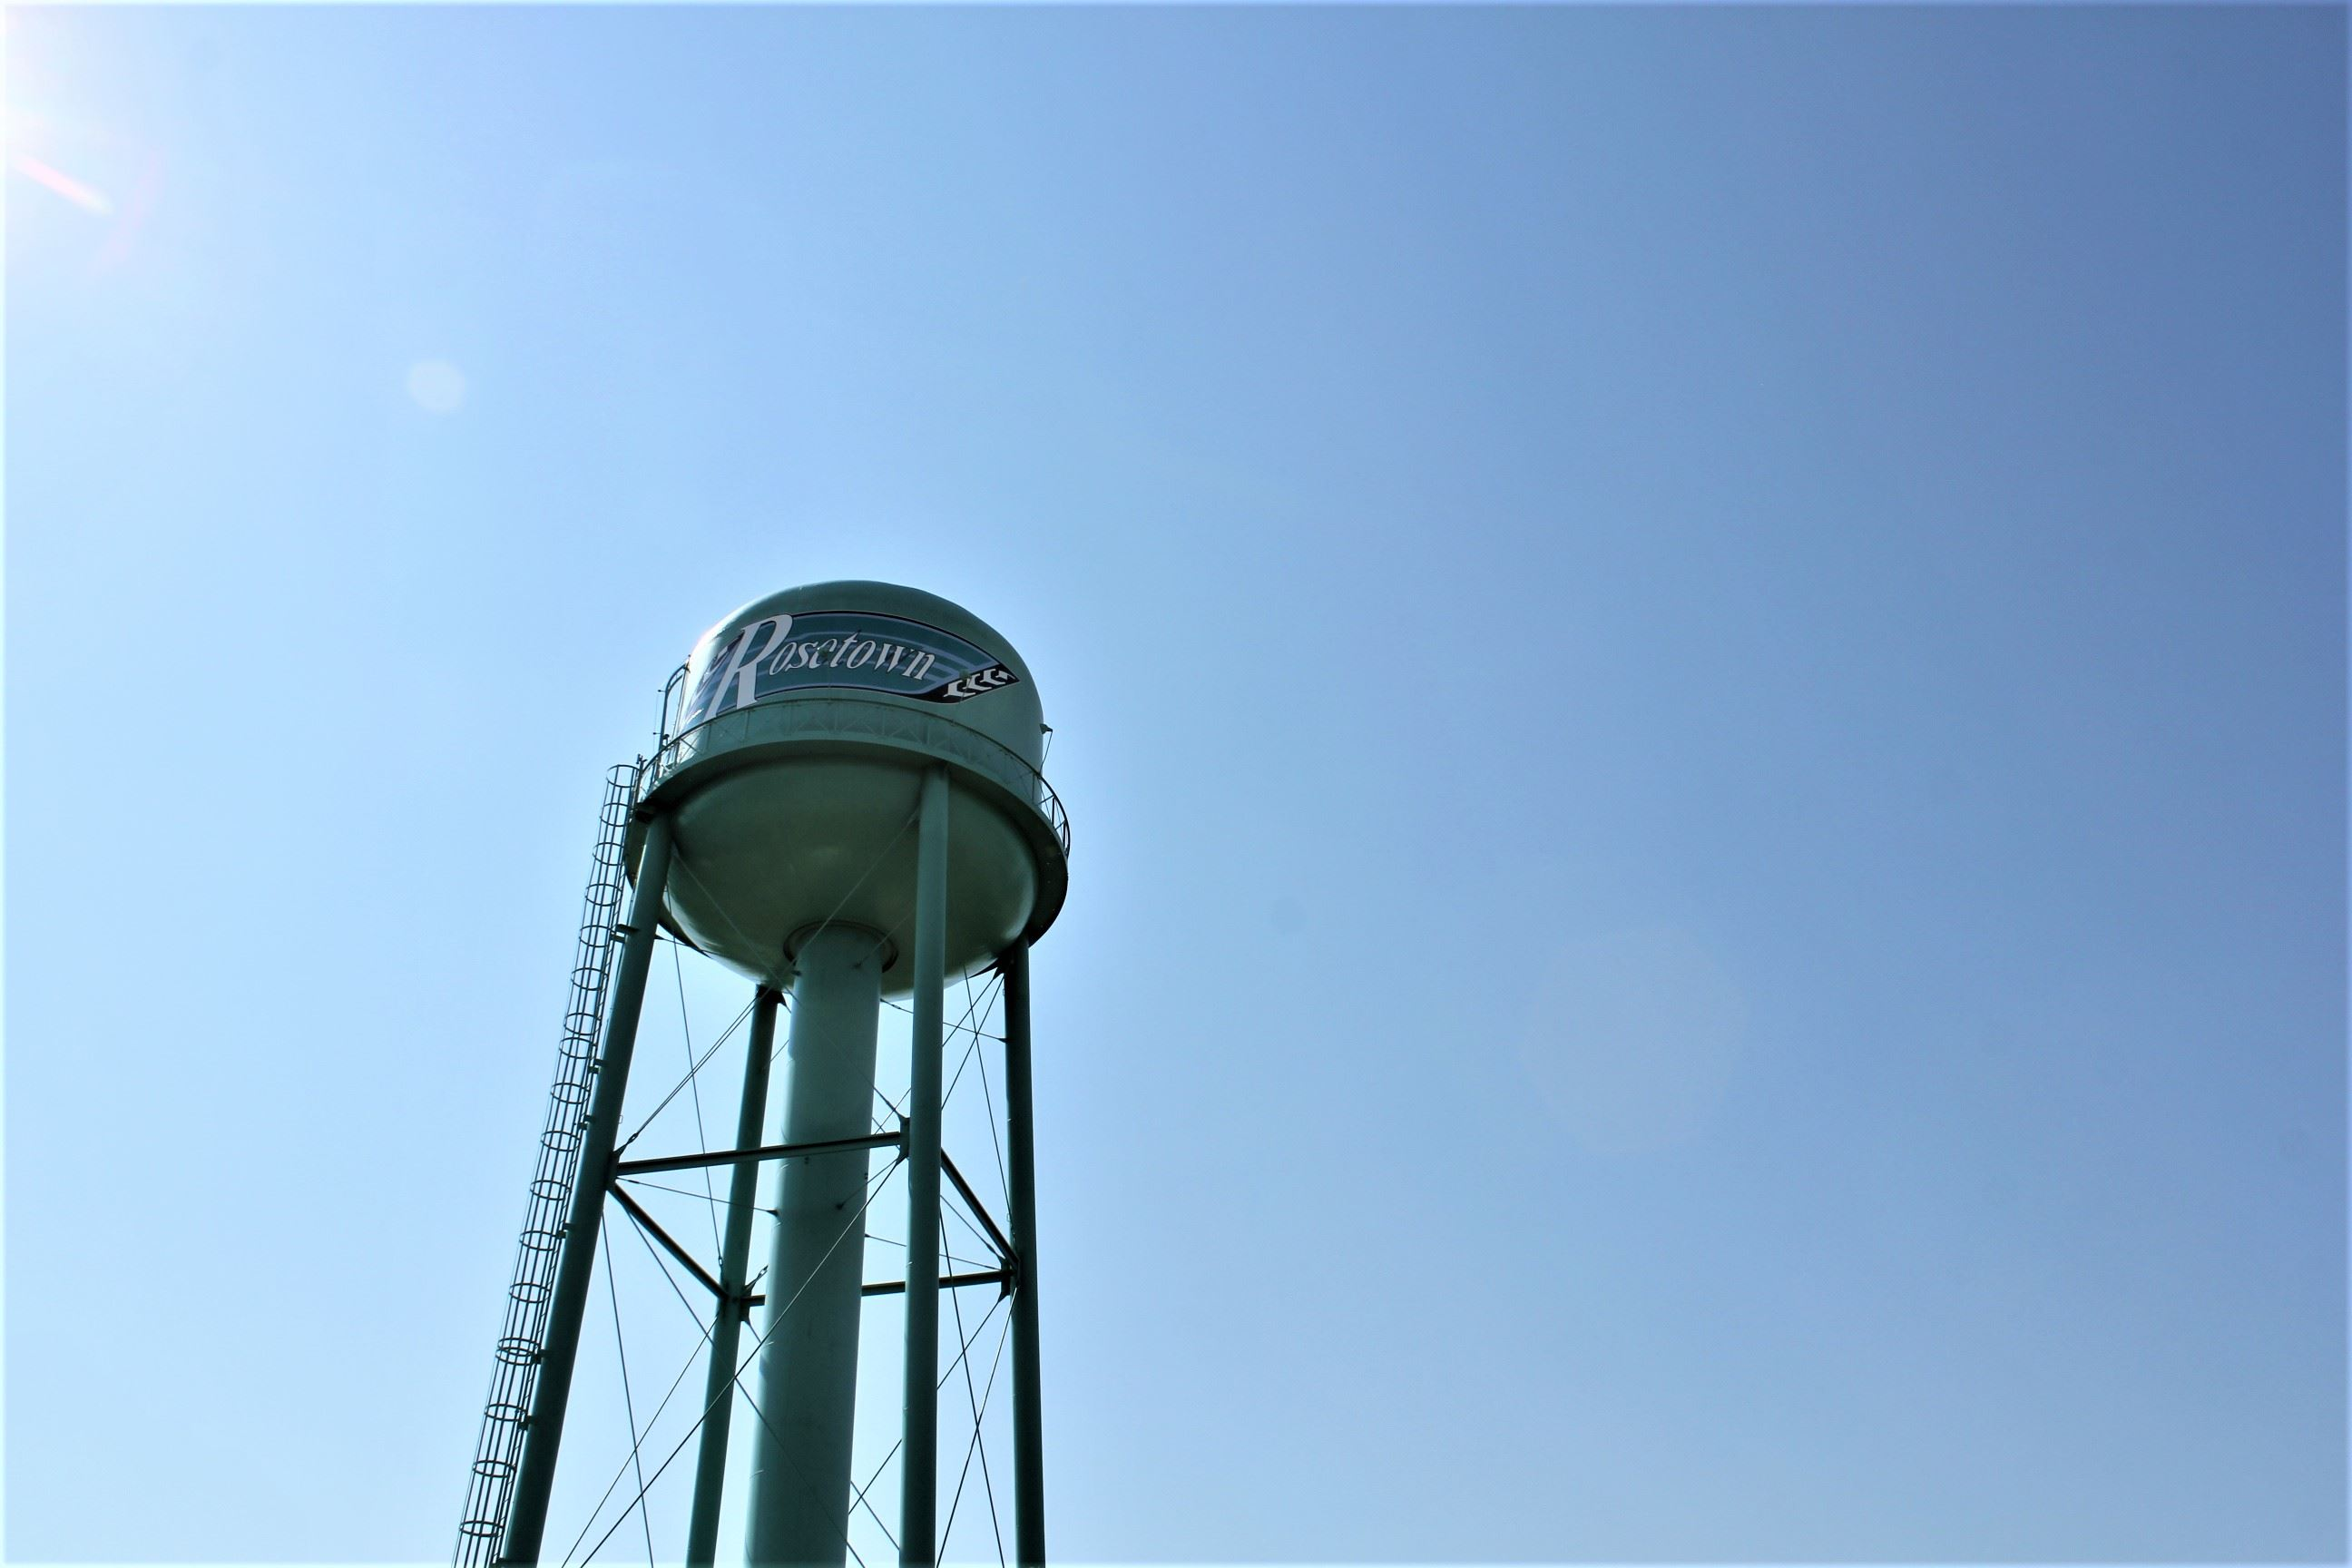 Image of Water Tower